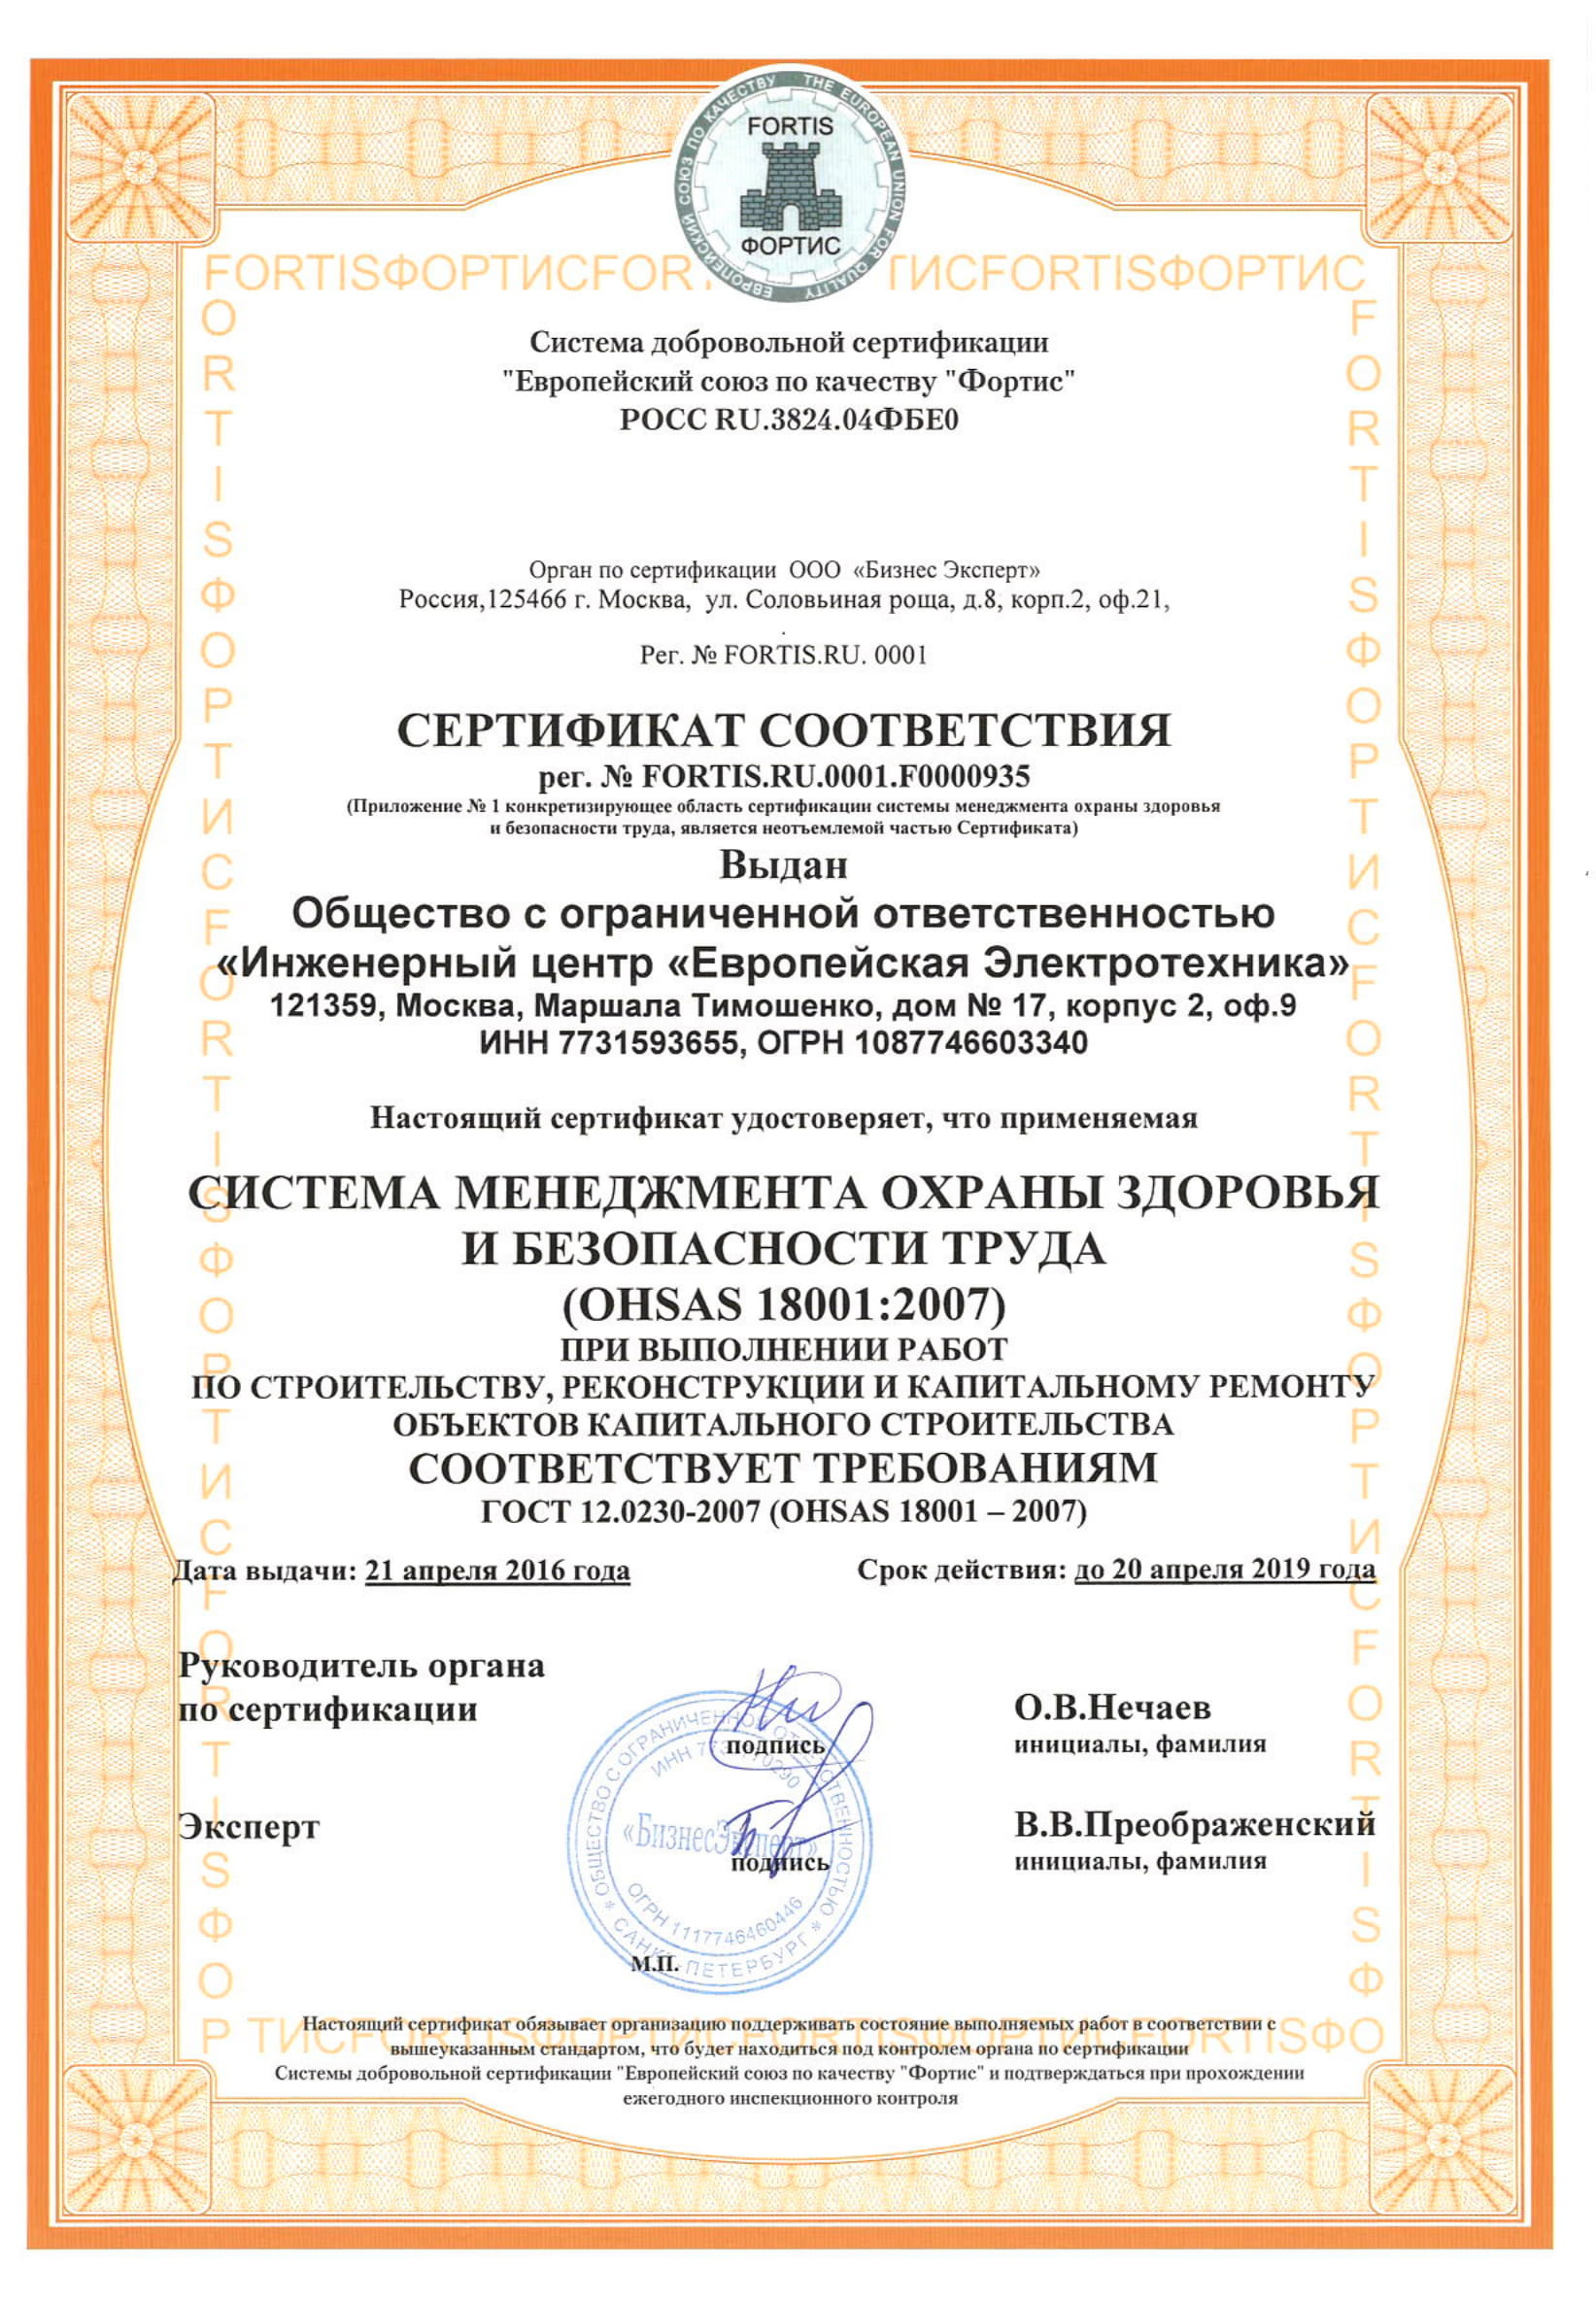 Certificate of Conformity to the Requirements of GOST (Health and Safety)